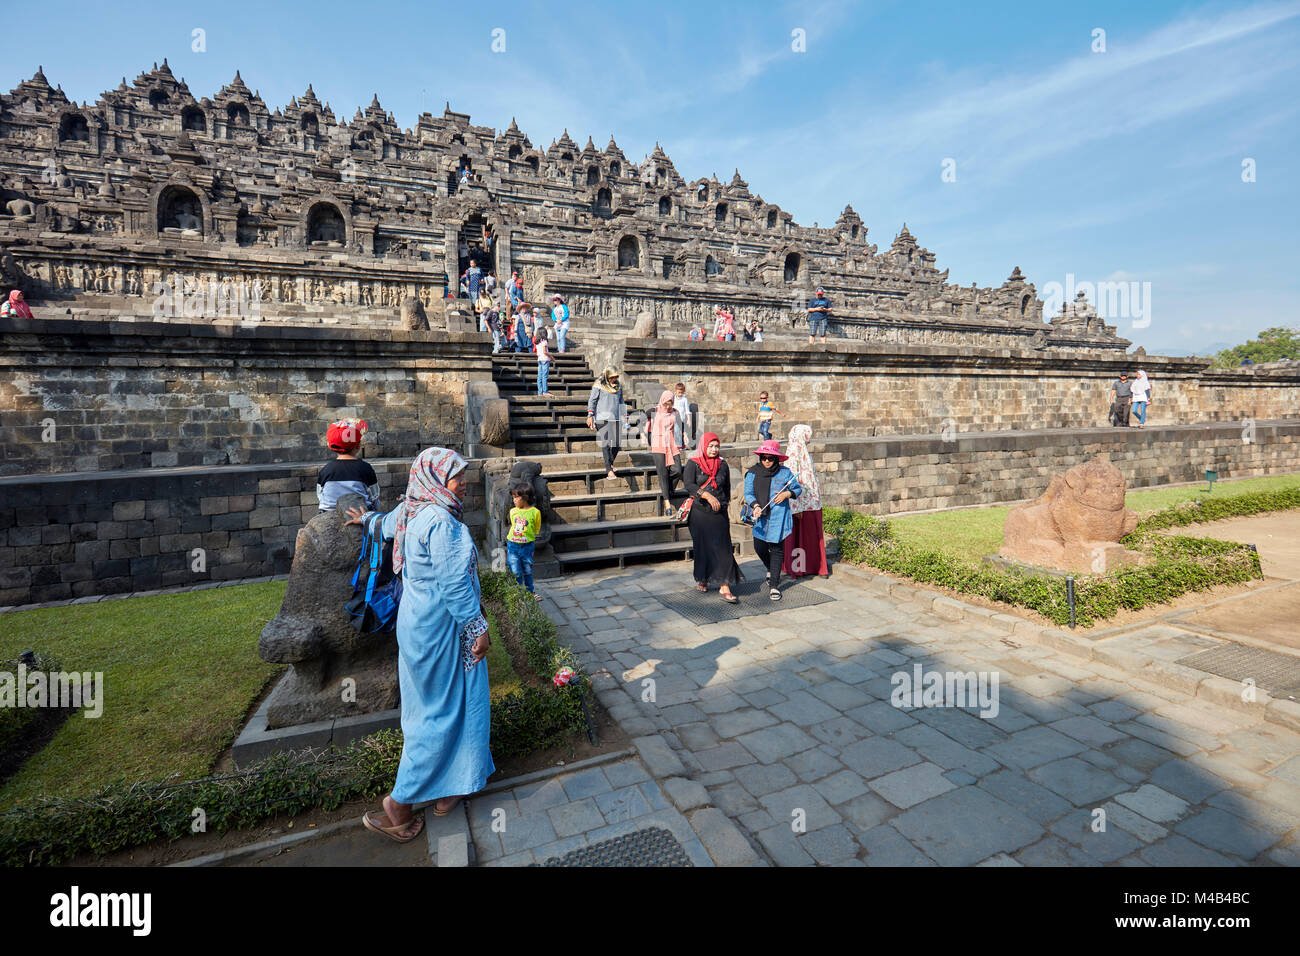 Tourists on the way out from the Borobudur Buddhist Temple. Magelang Regency, Java, Indonesia. - Stock Image